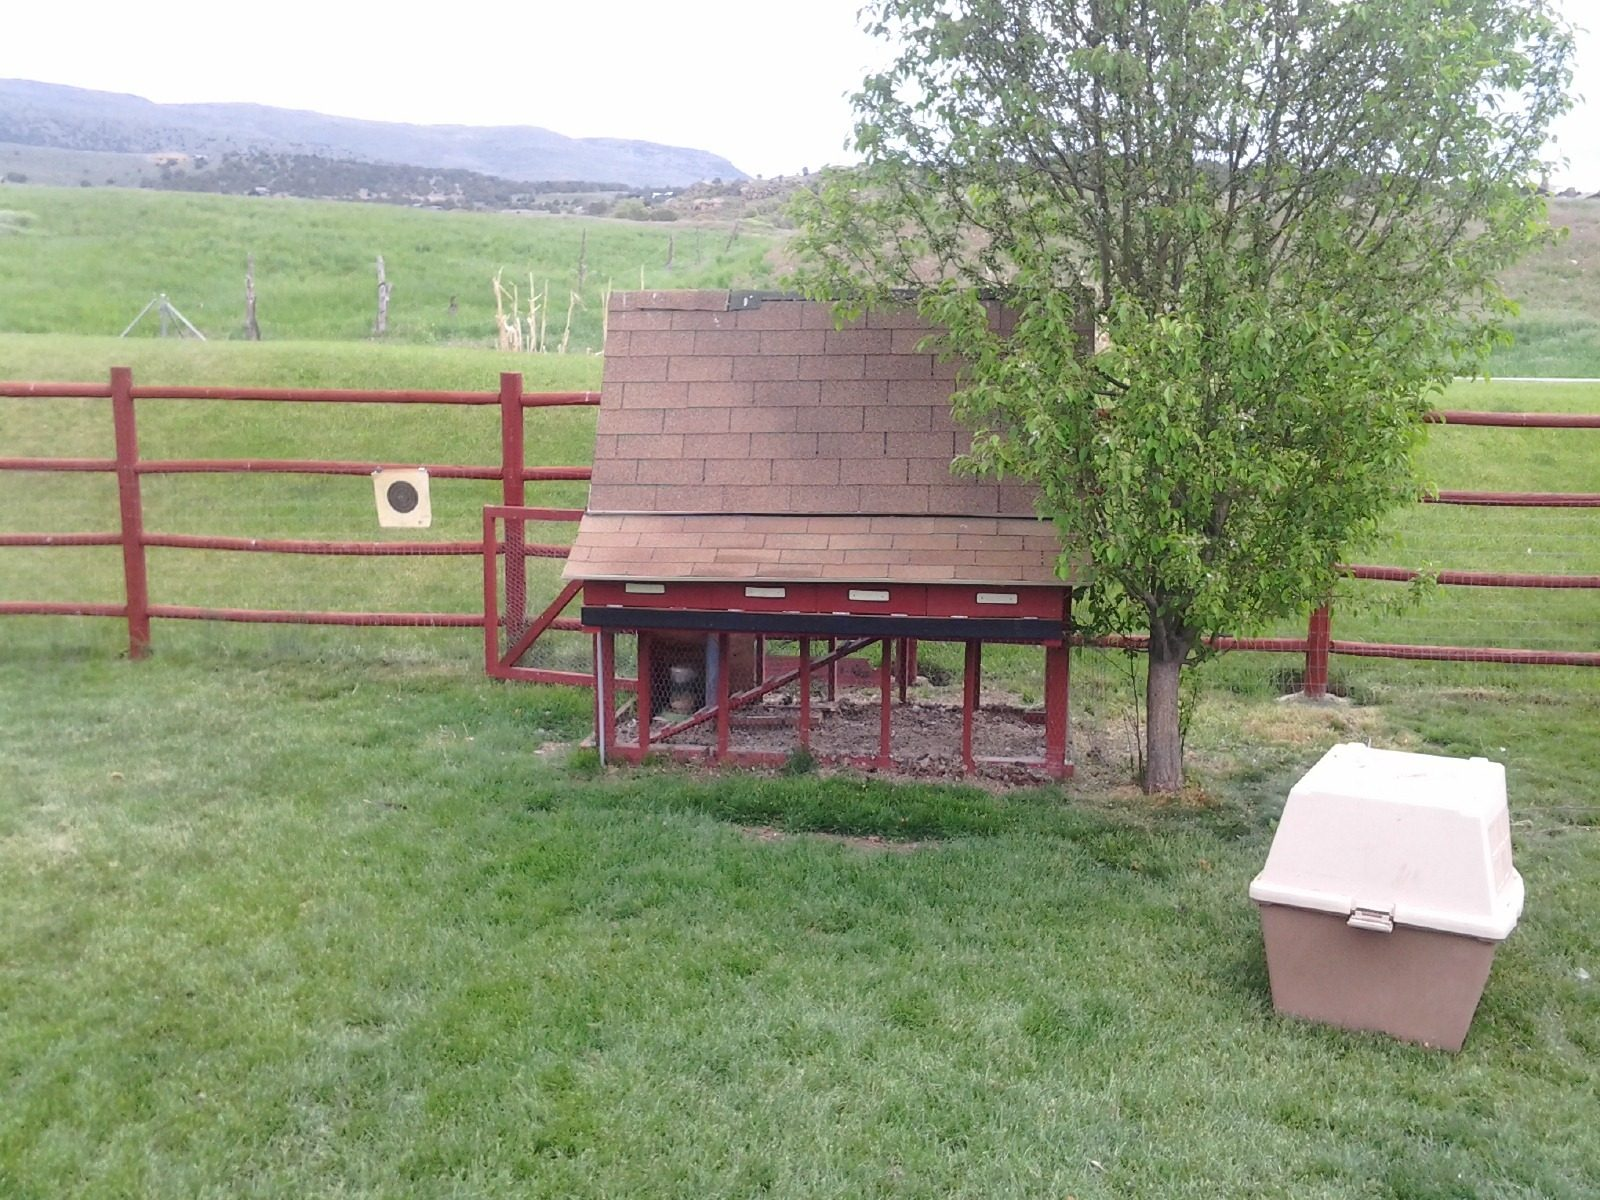 Open Perch to Ground Coop